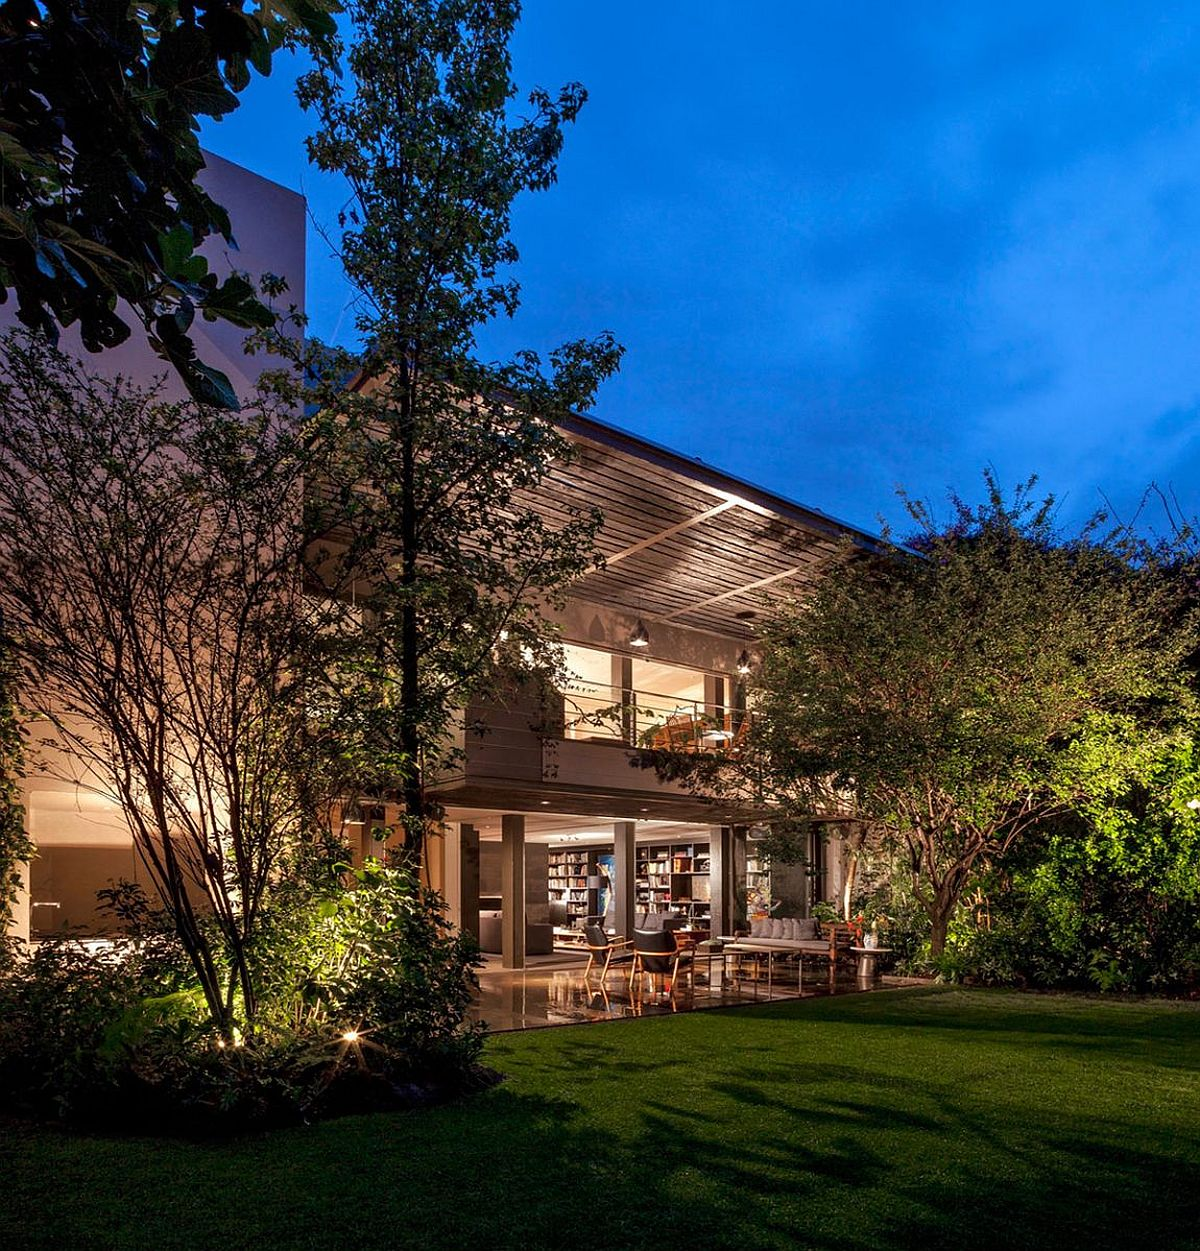 Outdoor-dining-and-hagout-at-the-lavish-home-in-Mexico